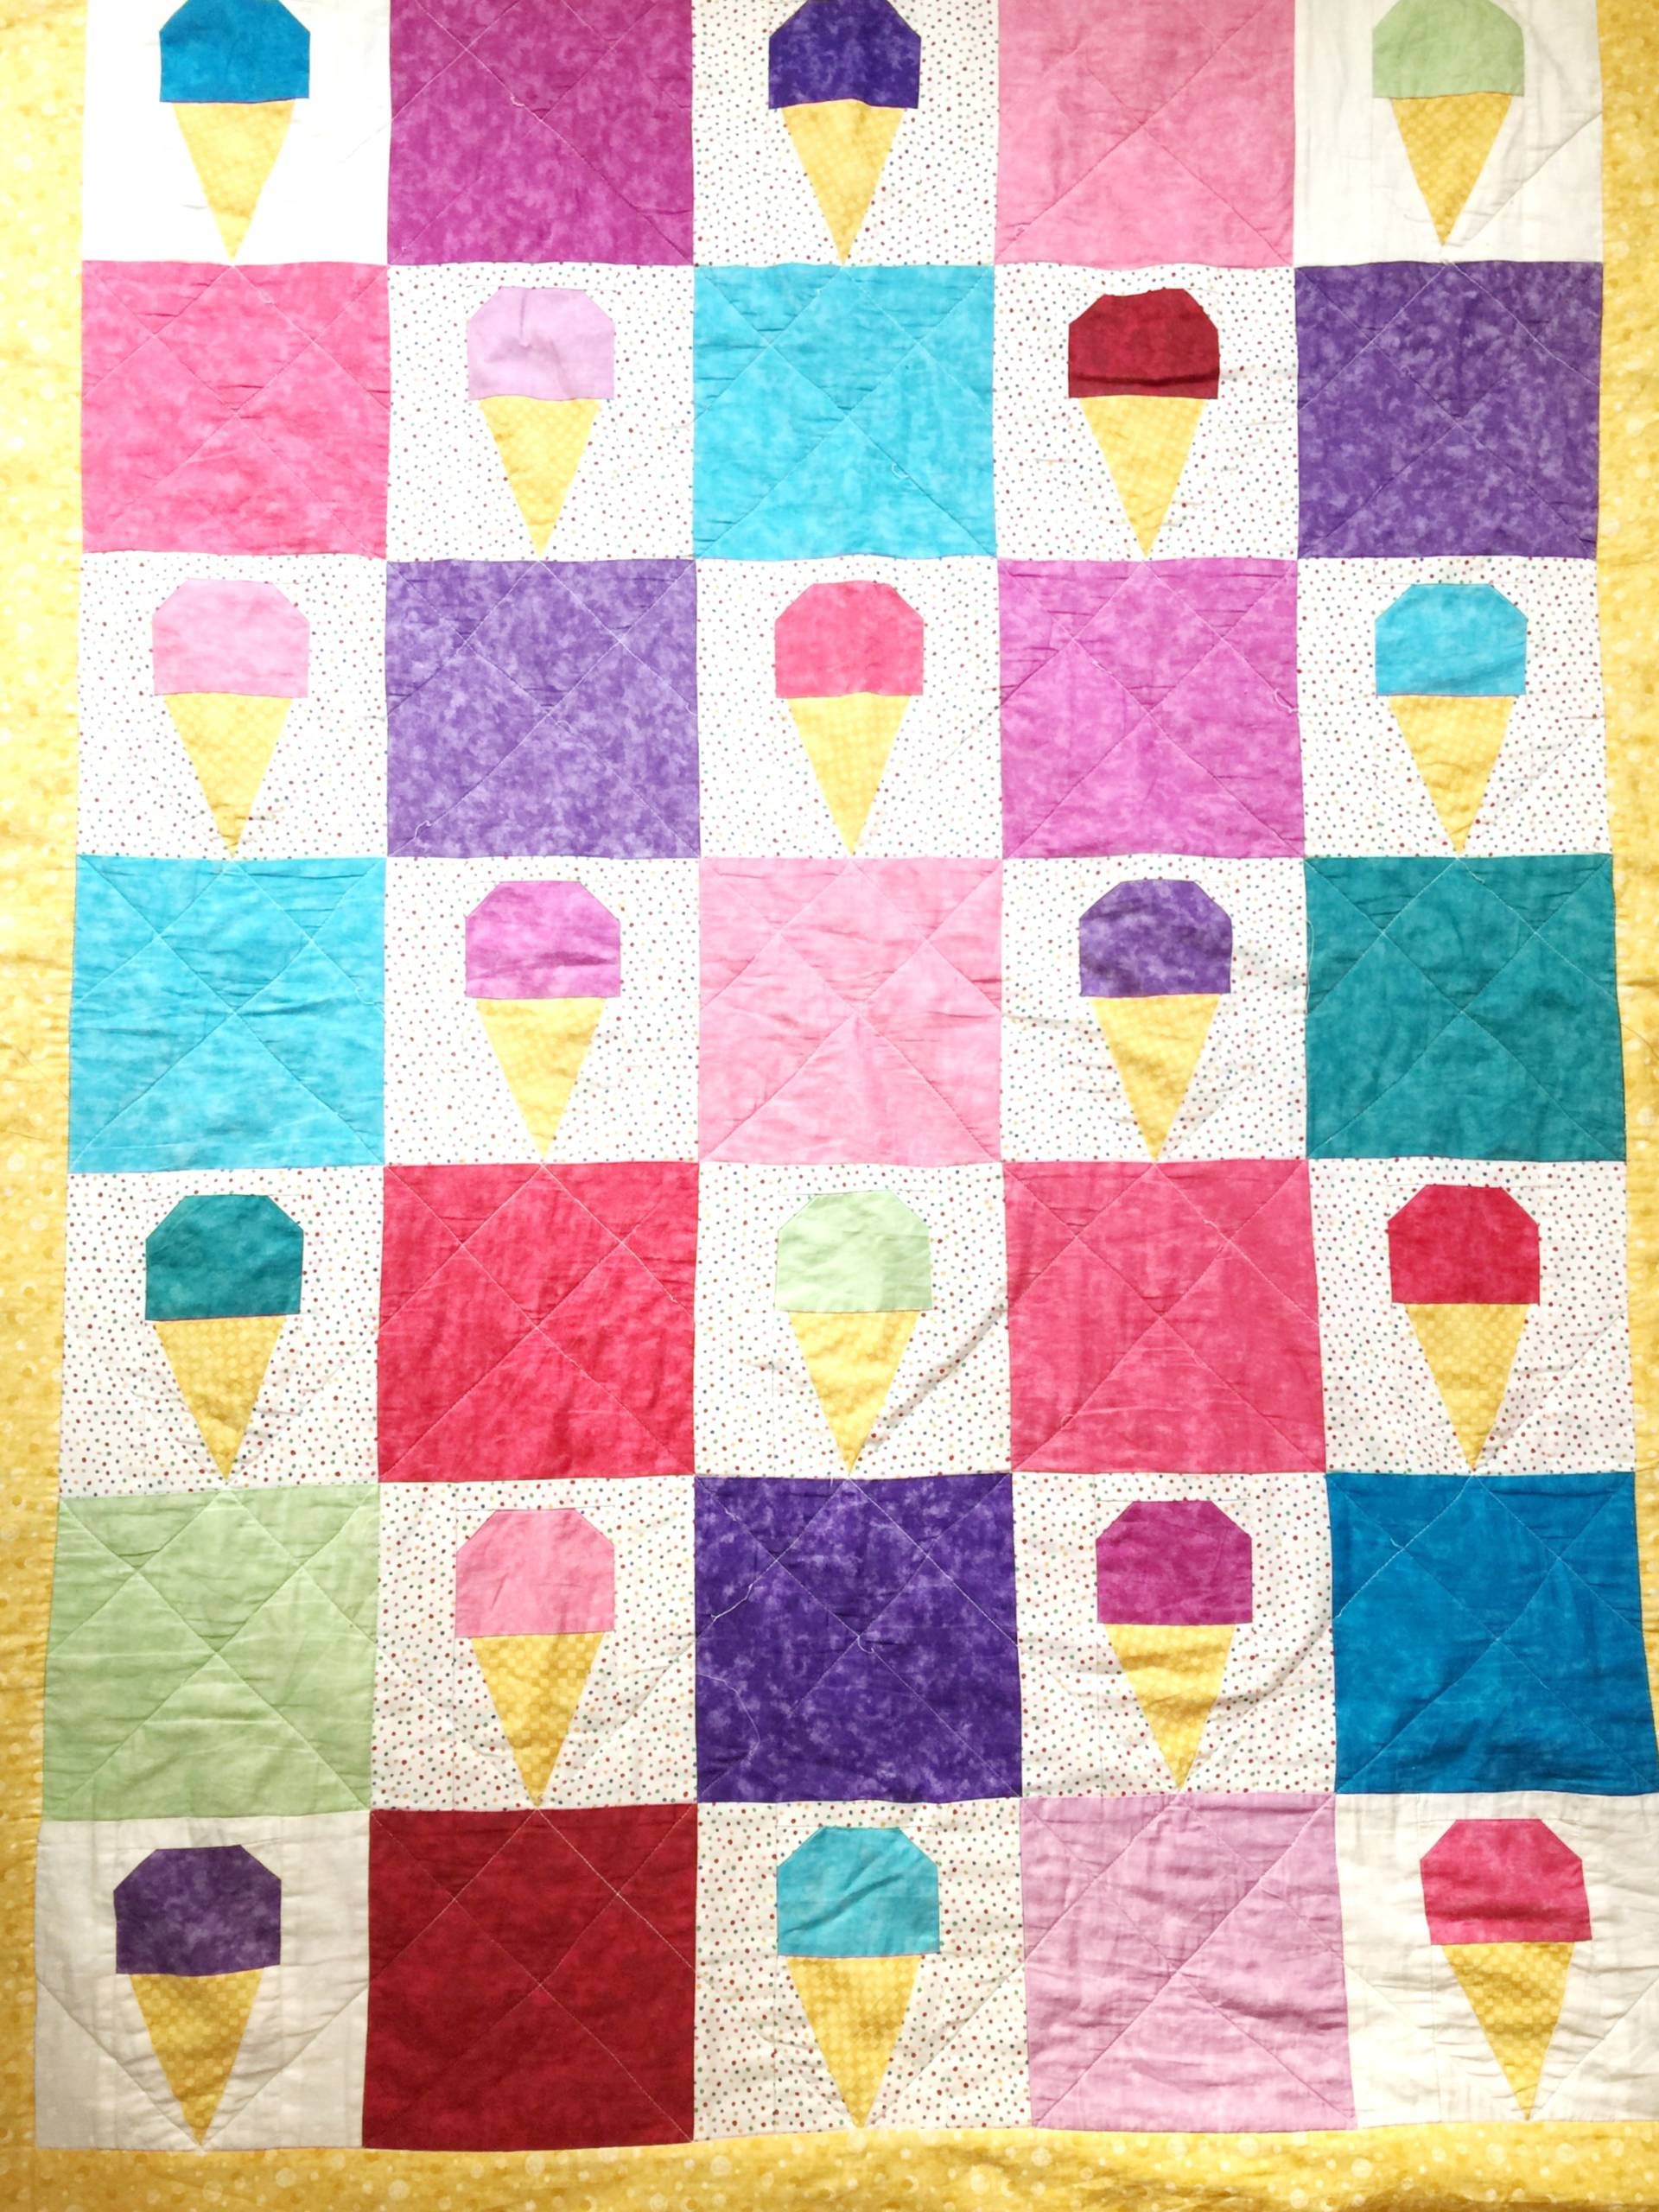 My first quilt every made (this one is technically my second quilt) and I still love this fun pattern